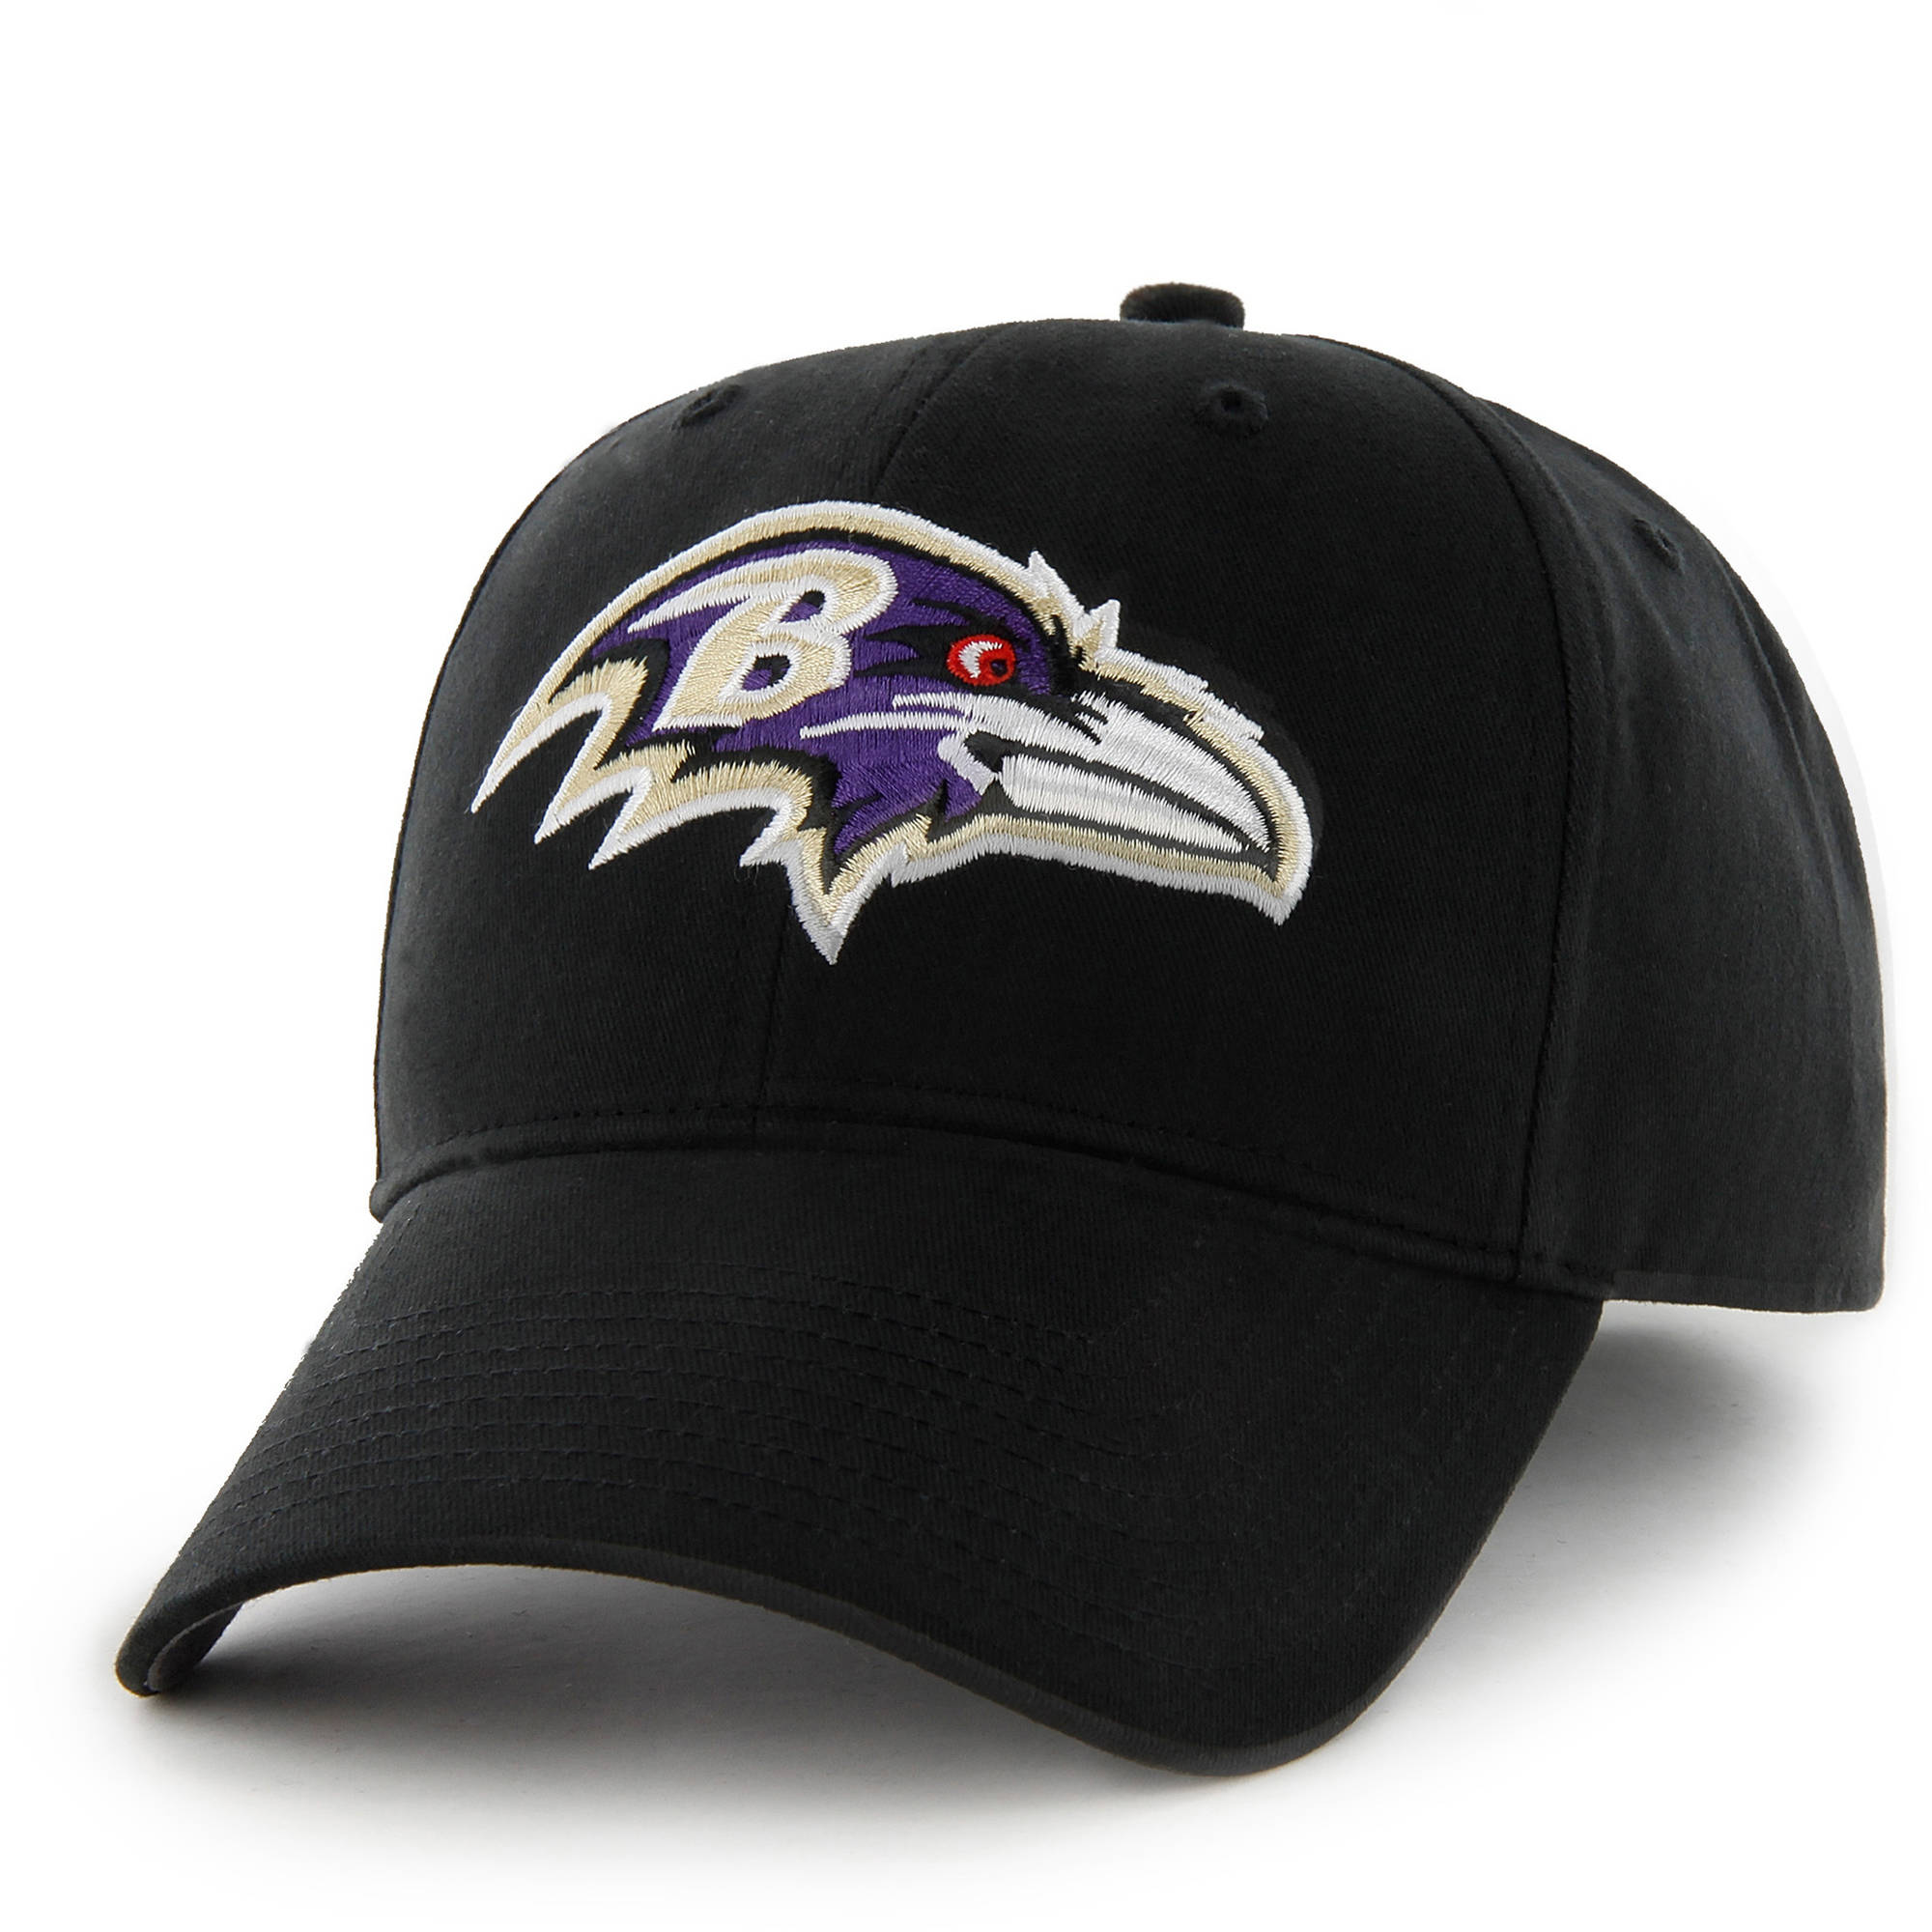 NFL Baltimore Ravens Basic Cap / Hat - Fan Favorite